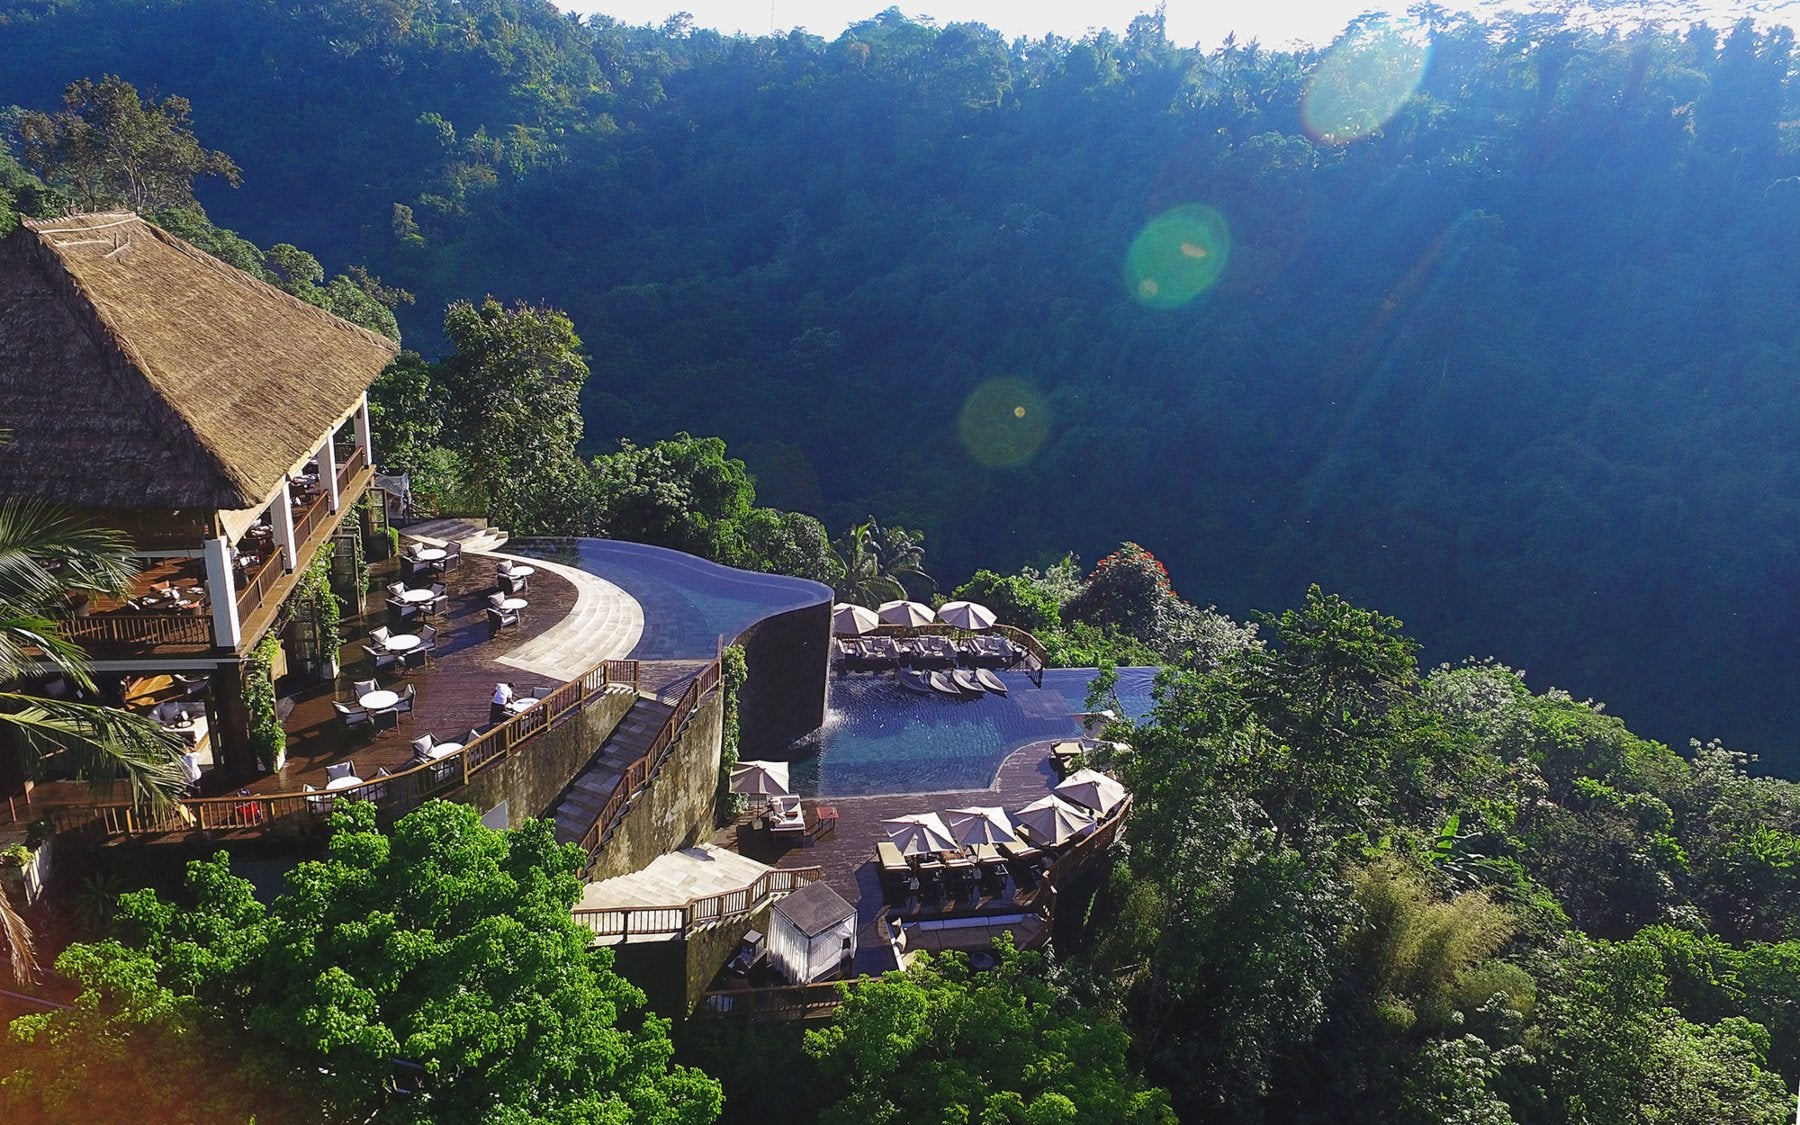 10 Best Hotel Swimming Pools Around The World - Hanging Gardens of Bali - LuxDeco.com Style Guide